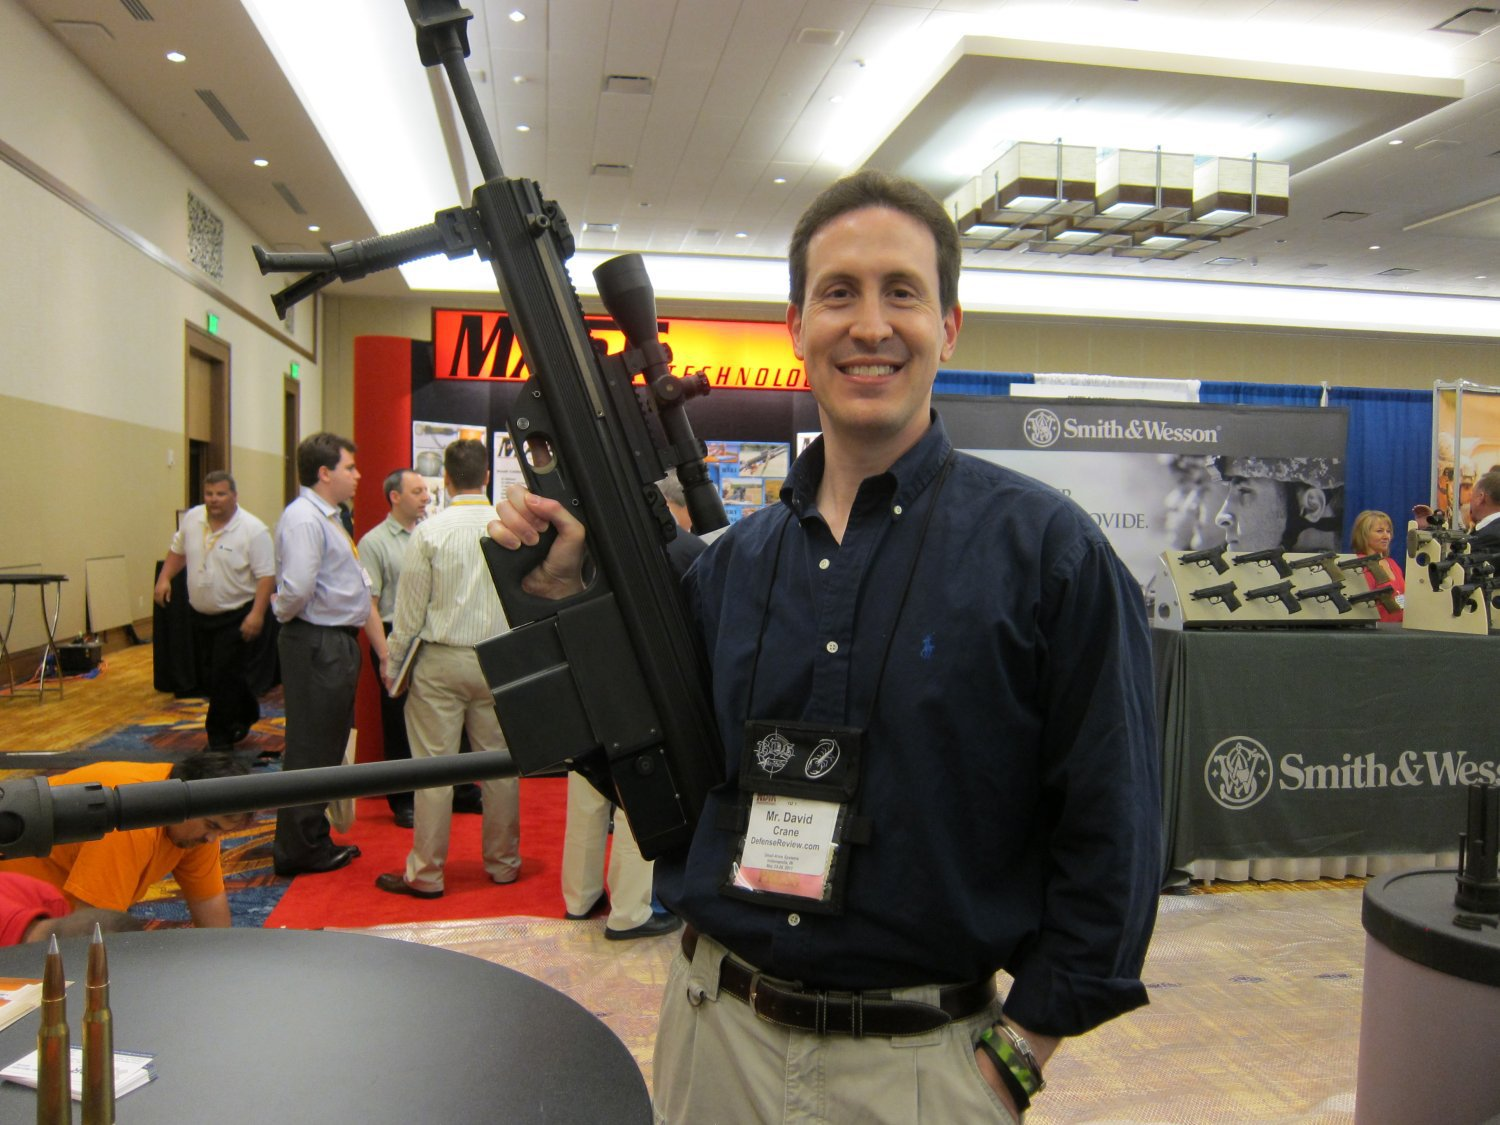 Micor Defense Leader 50 Bullpup .50 BMG Anti-Materiel/Sniper Rifle Goes into Production for Civilian Tactical Shooters: Shortest, Lightest .50-Caliber Sniper Rifle Ever?